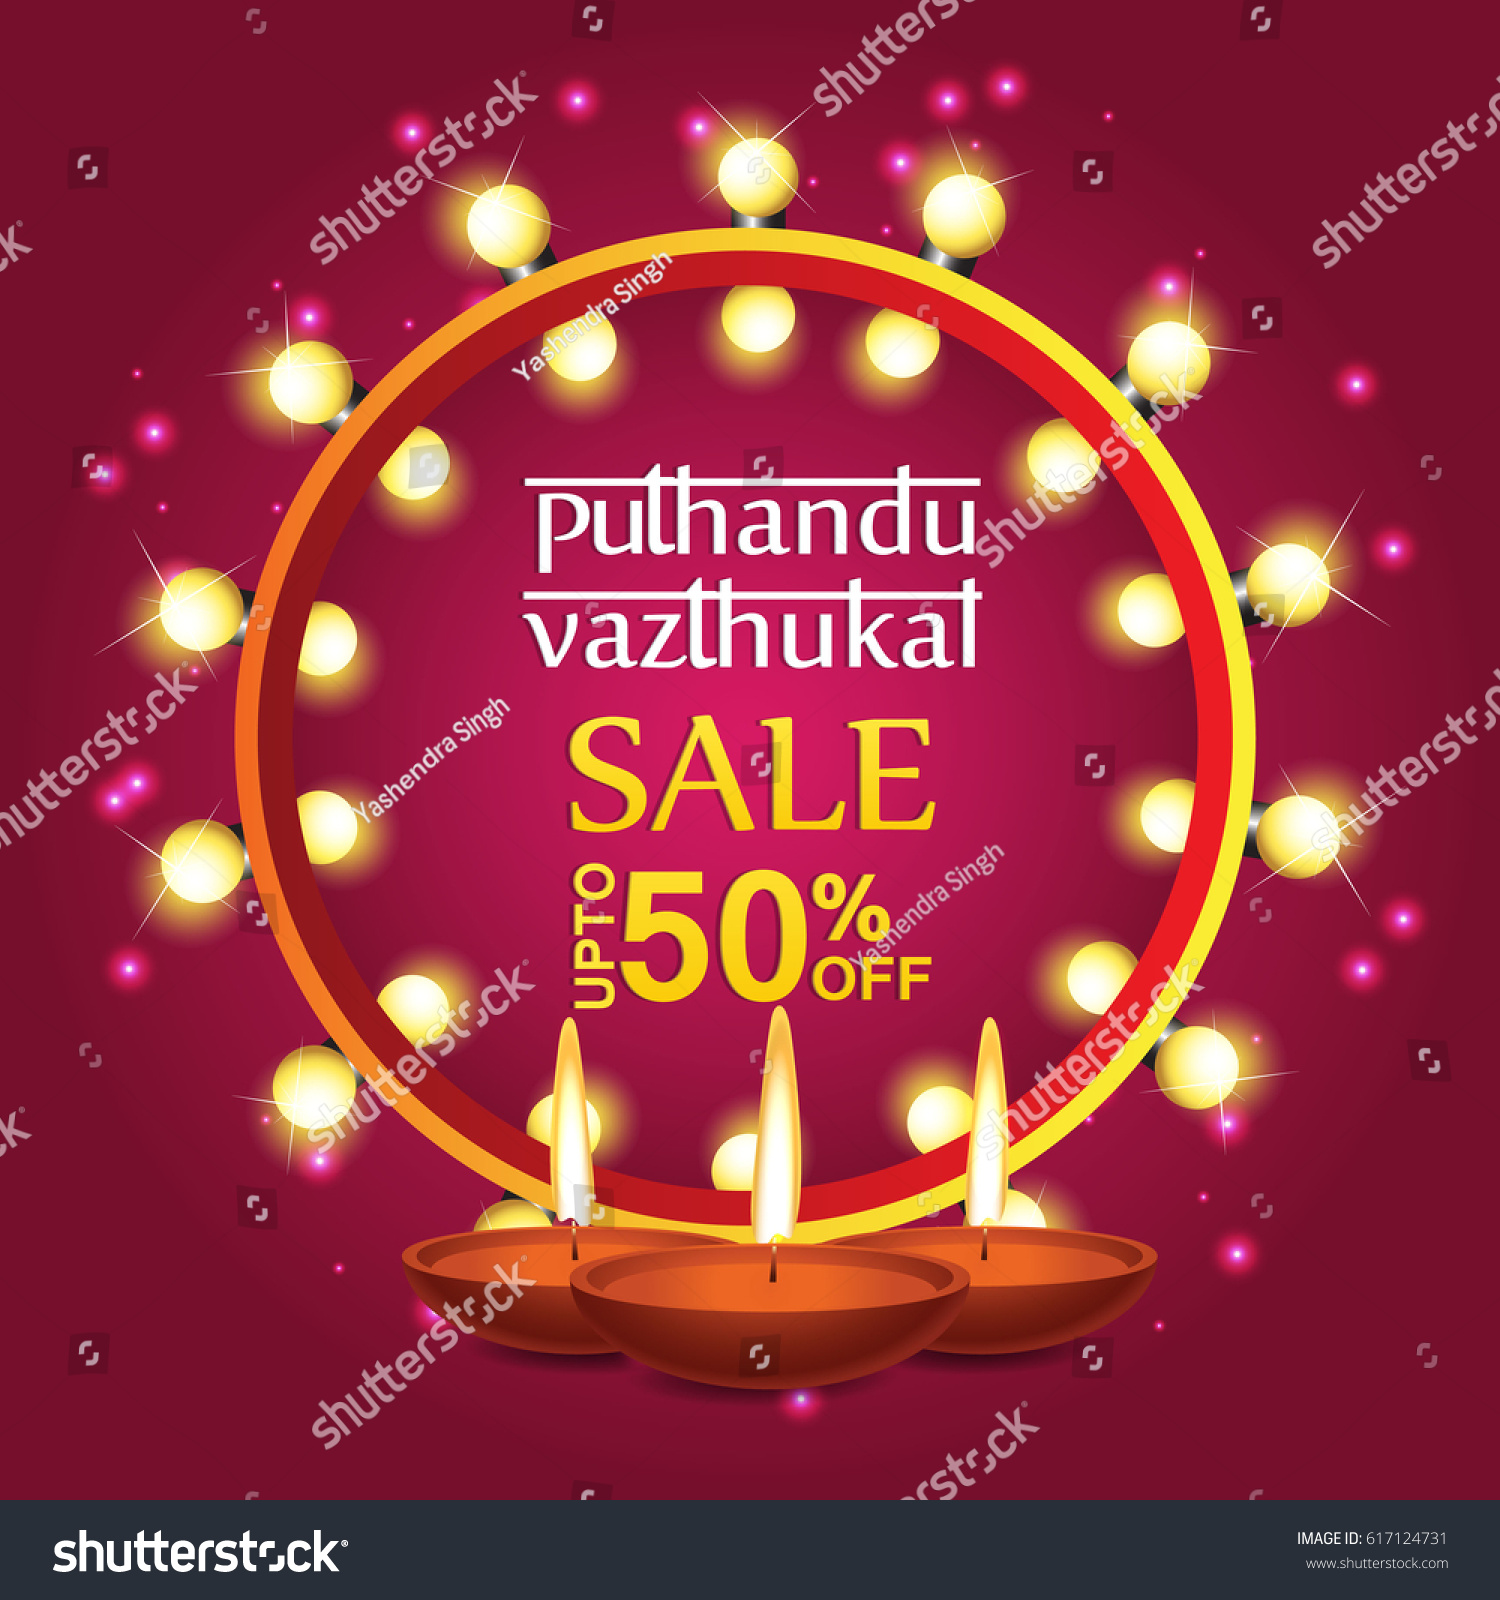 Tamil new year mega sale flat stock vector 617124731 shutterstock tamil new year mega sale with flat 50 off creative poster banner m4hsunfo